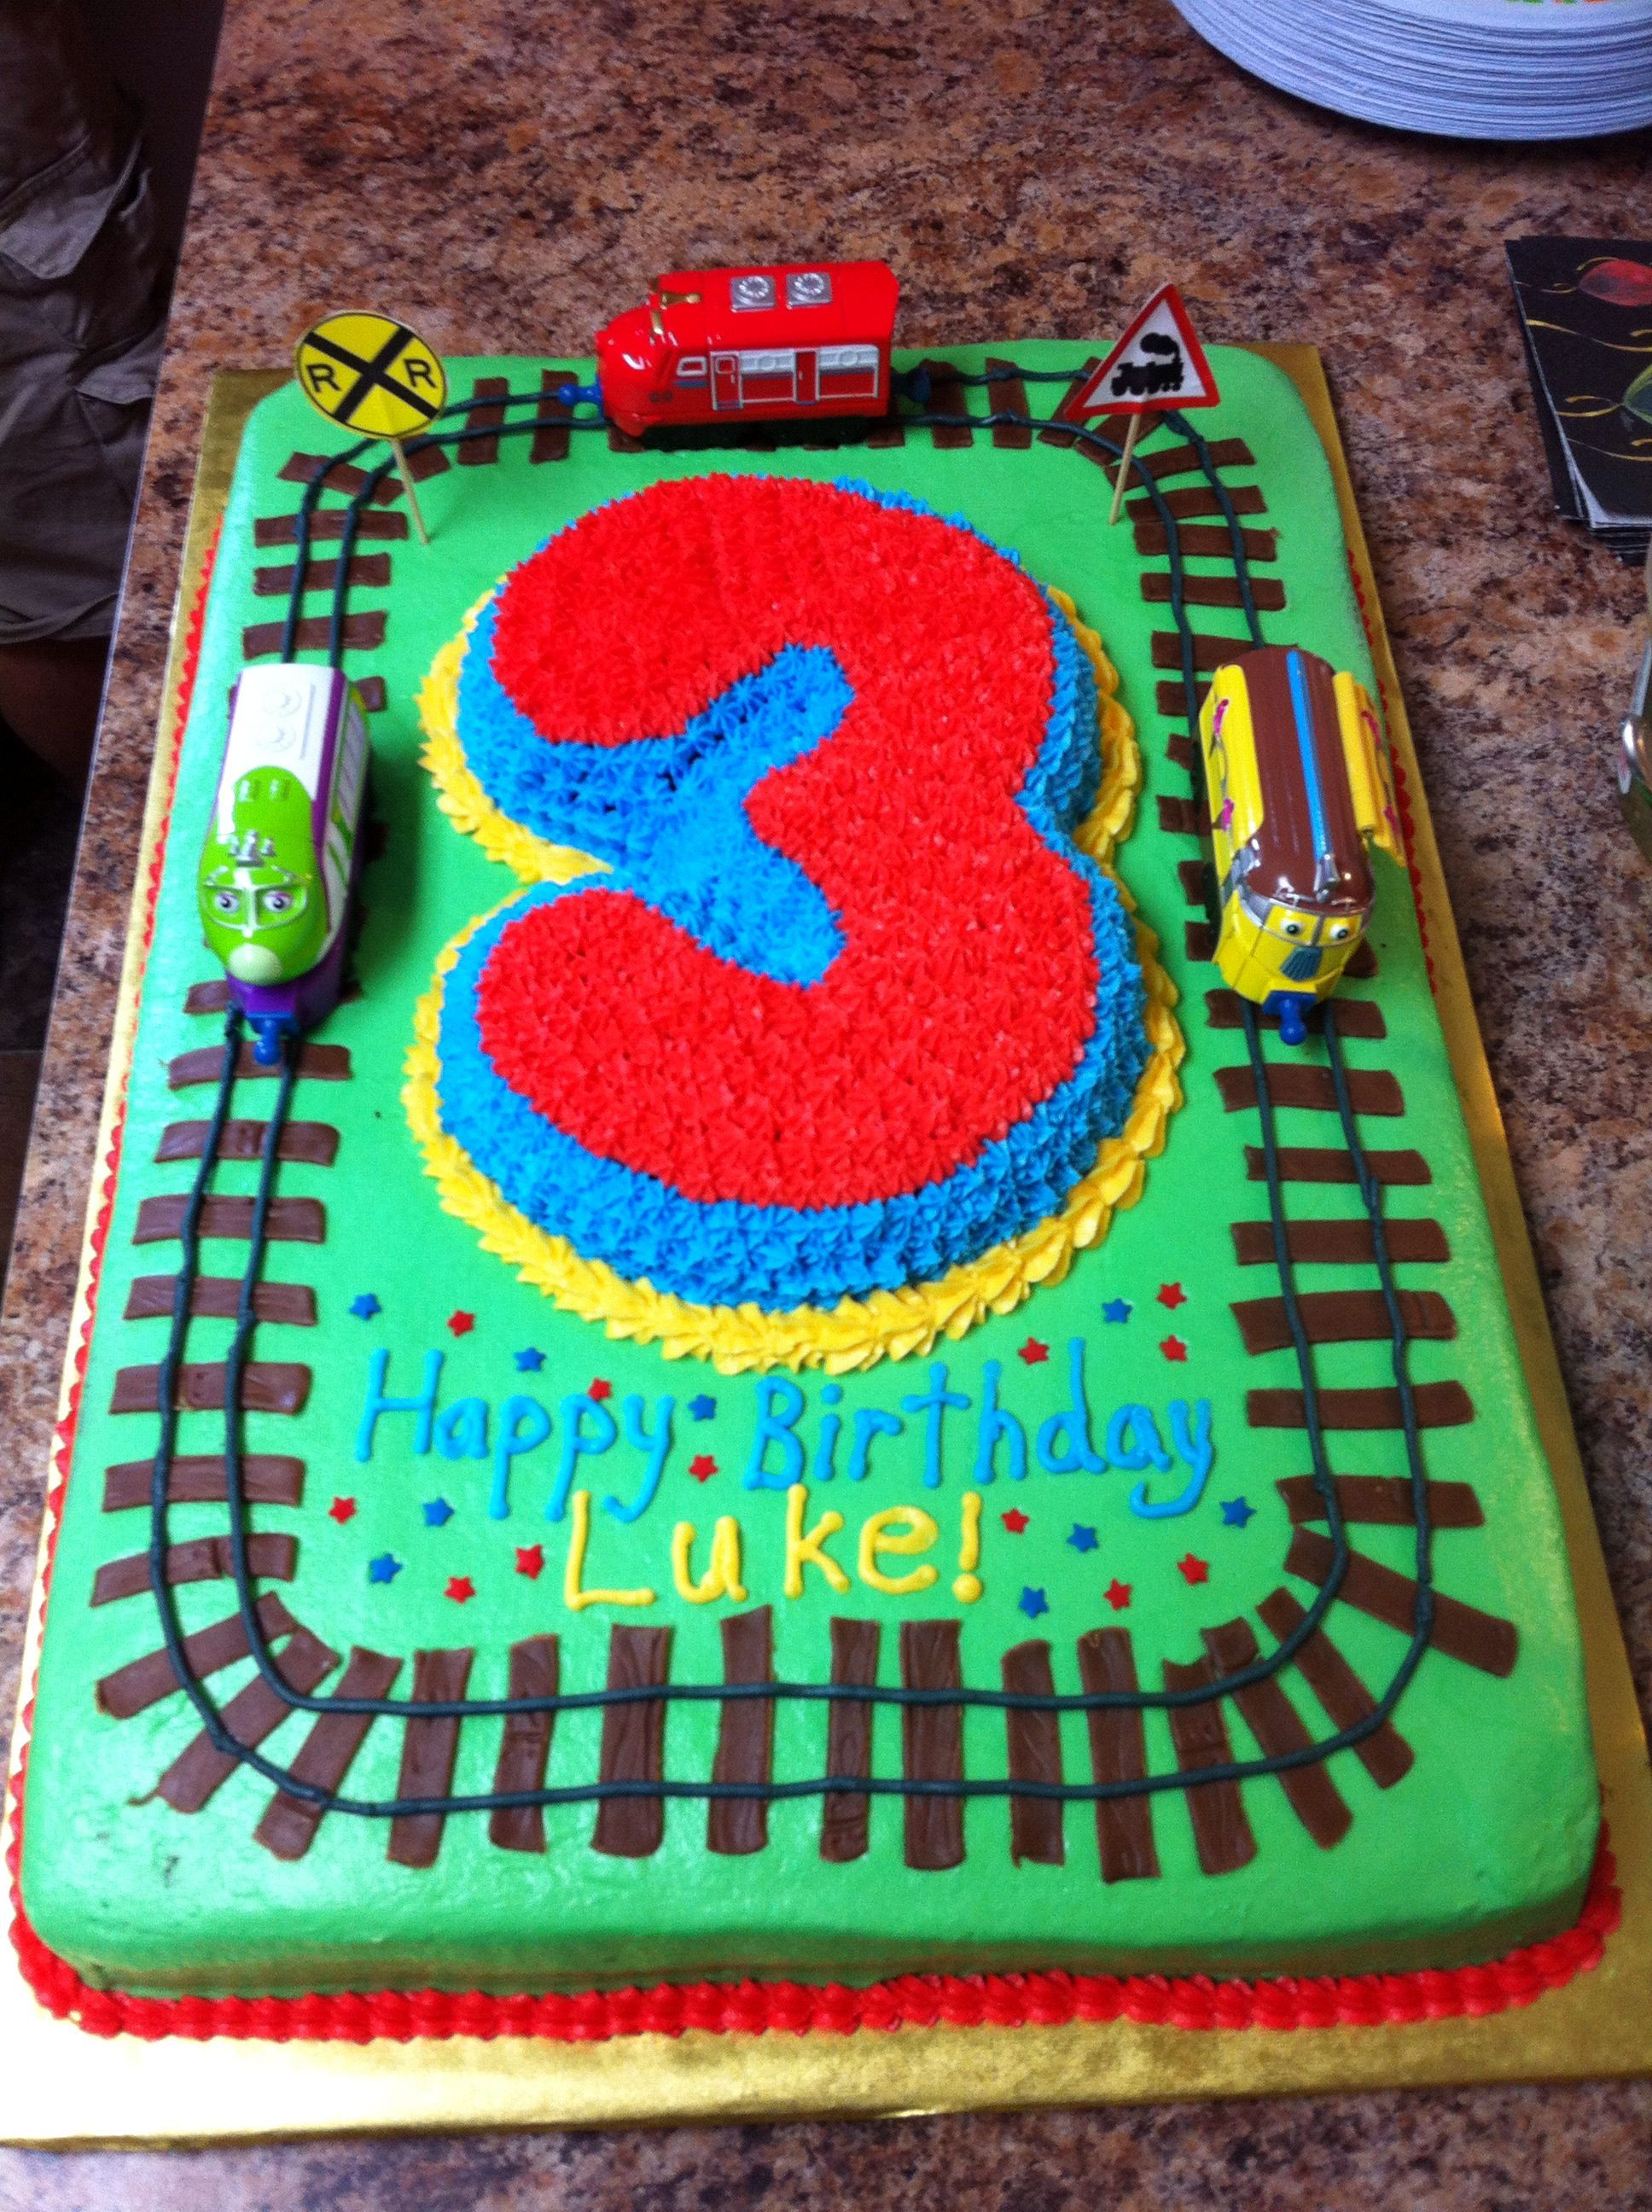 10 Birthday Cake Ideas For Boys Boys Birthday Cakes Easy Chuggington Birthday 3rd Birthday Cakes